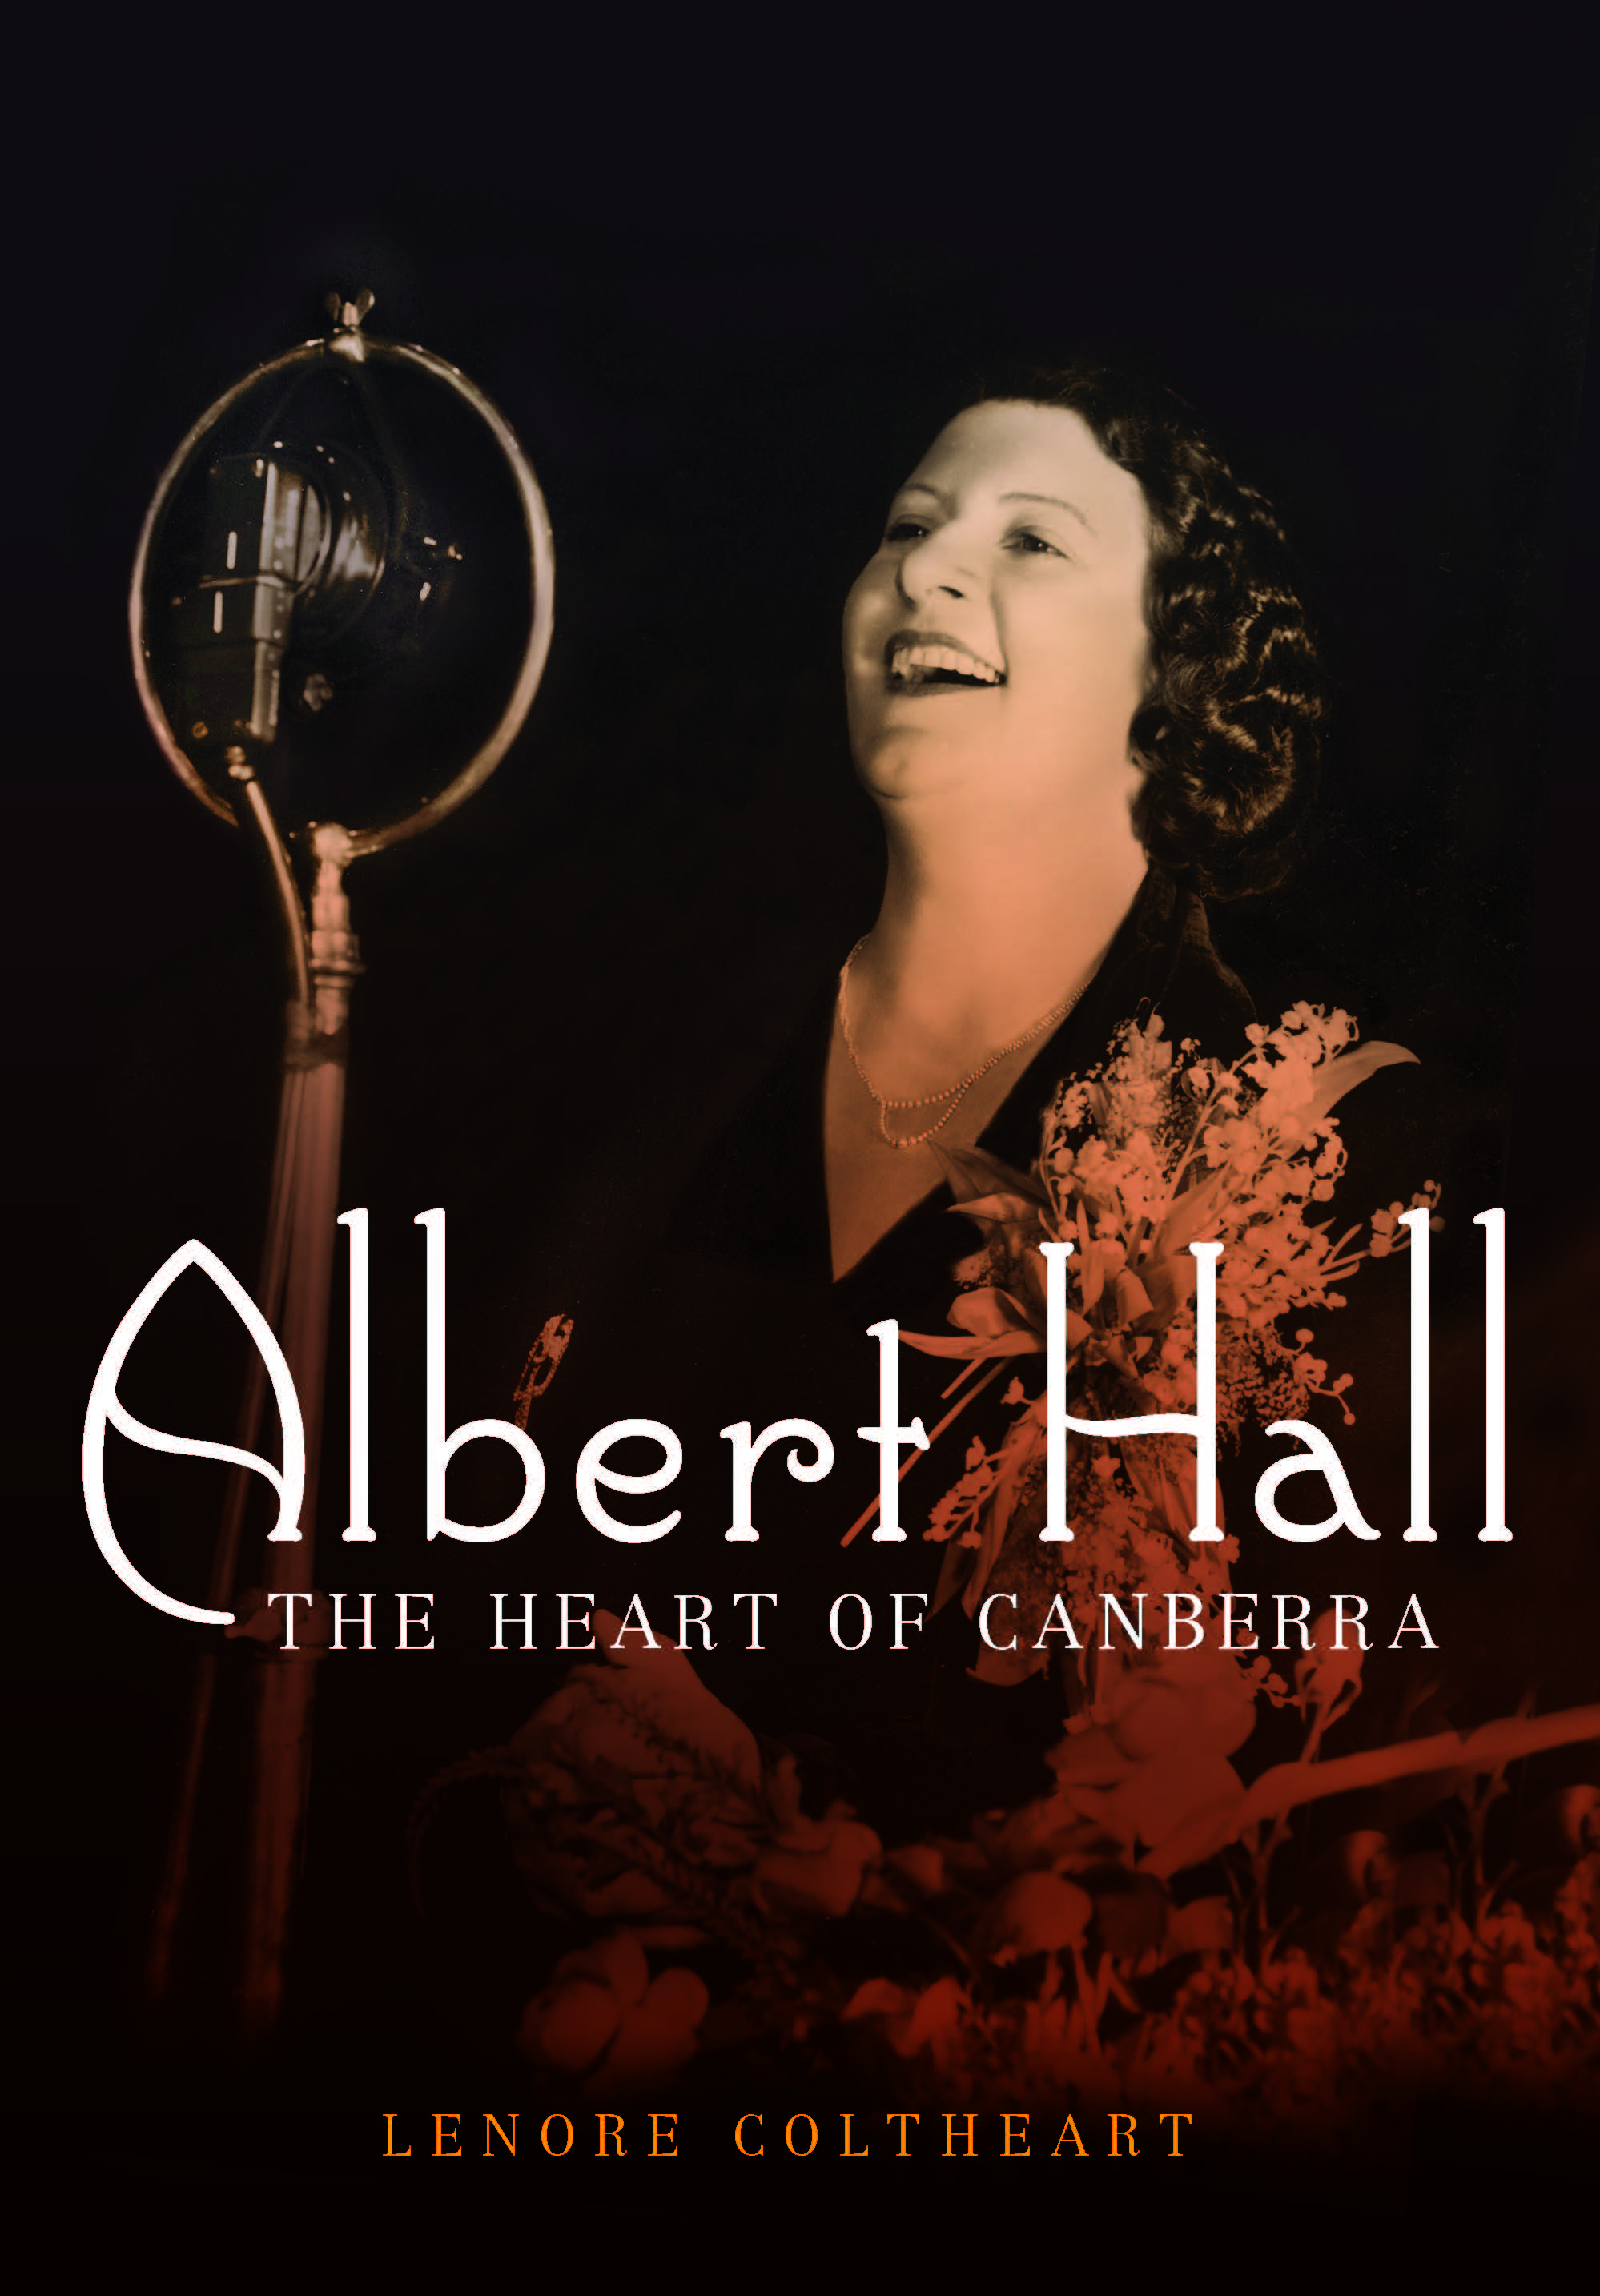 Albert Hall: the heart of Canberra